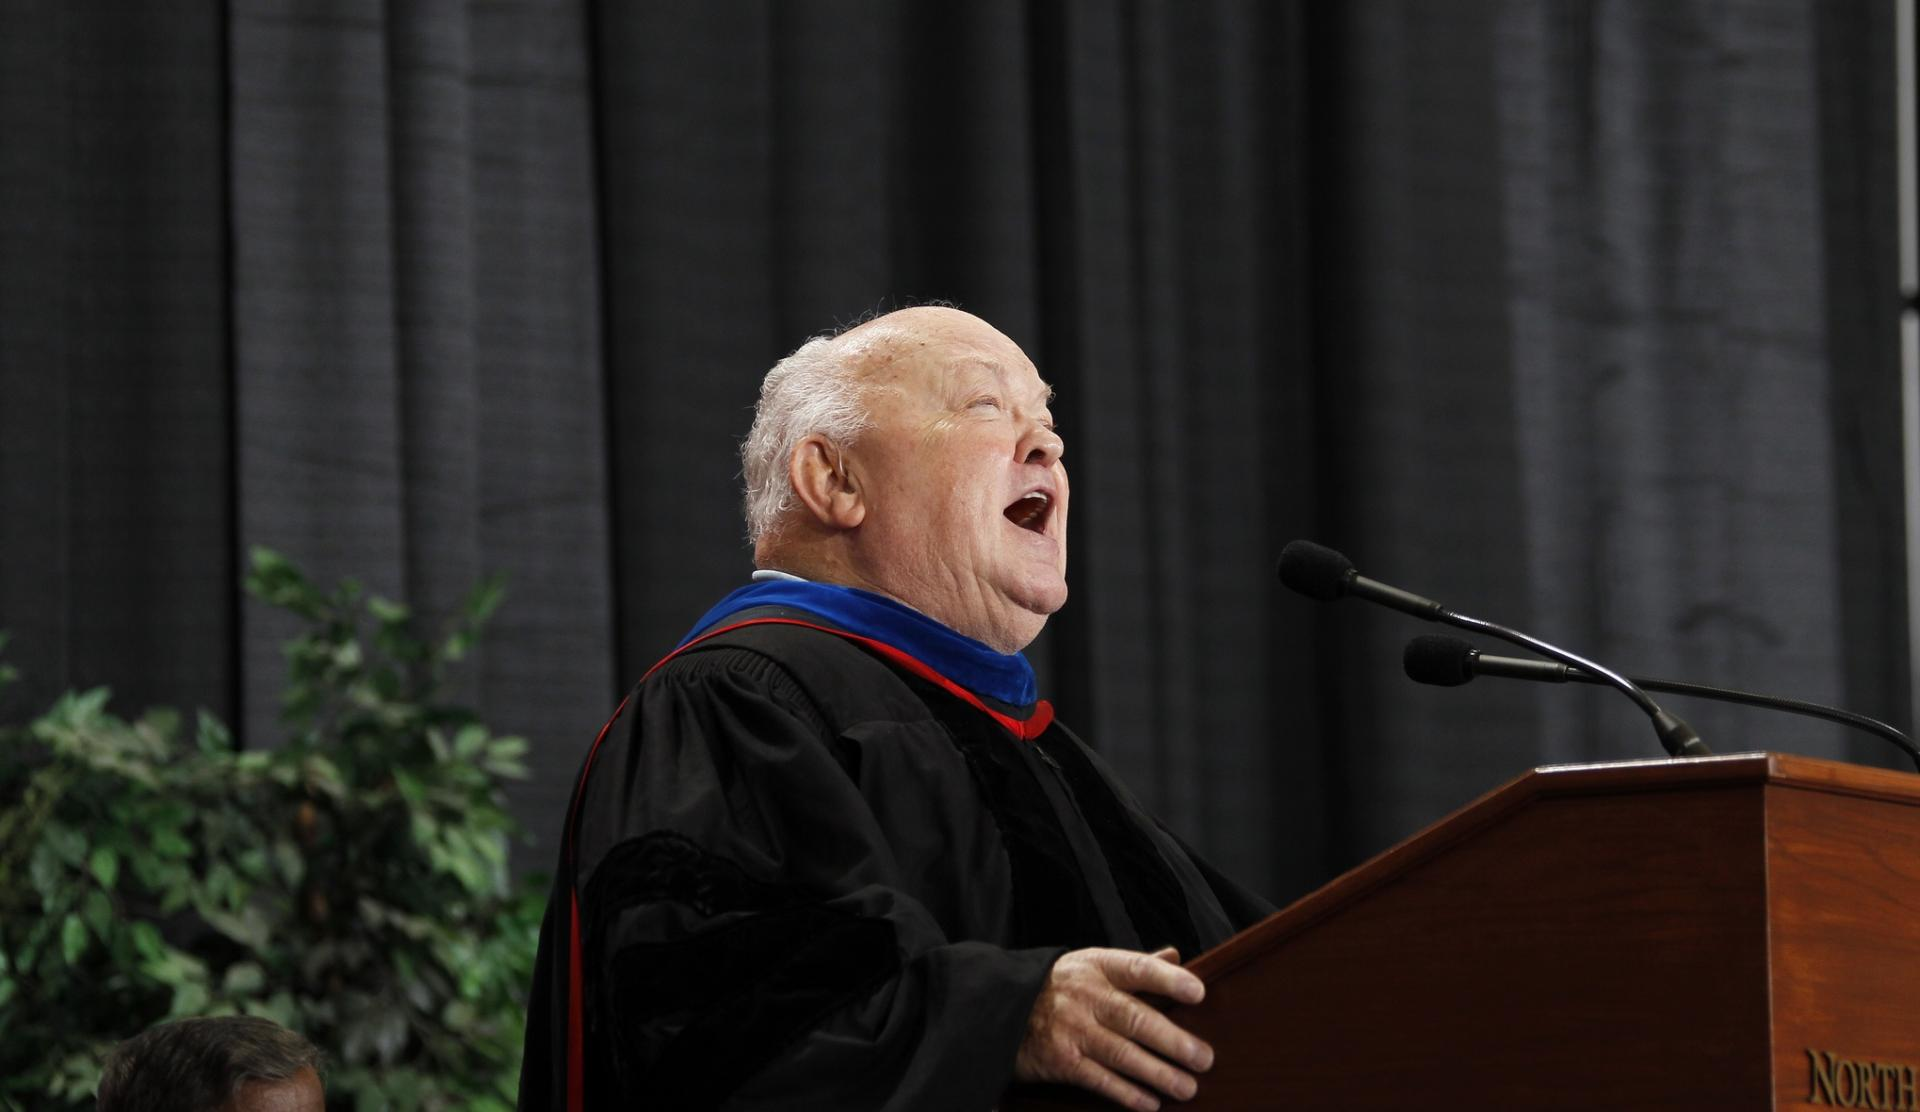 Naperville's longest-serving mayor, A. George Pradel, offers a welcome to students and their families at Commencement in 2012.